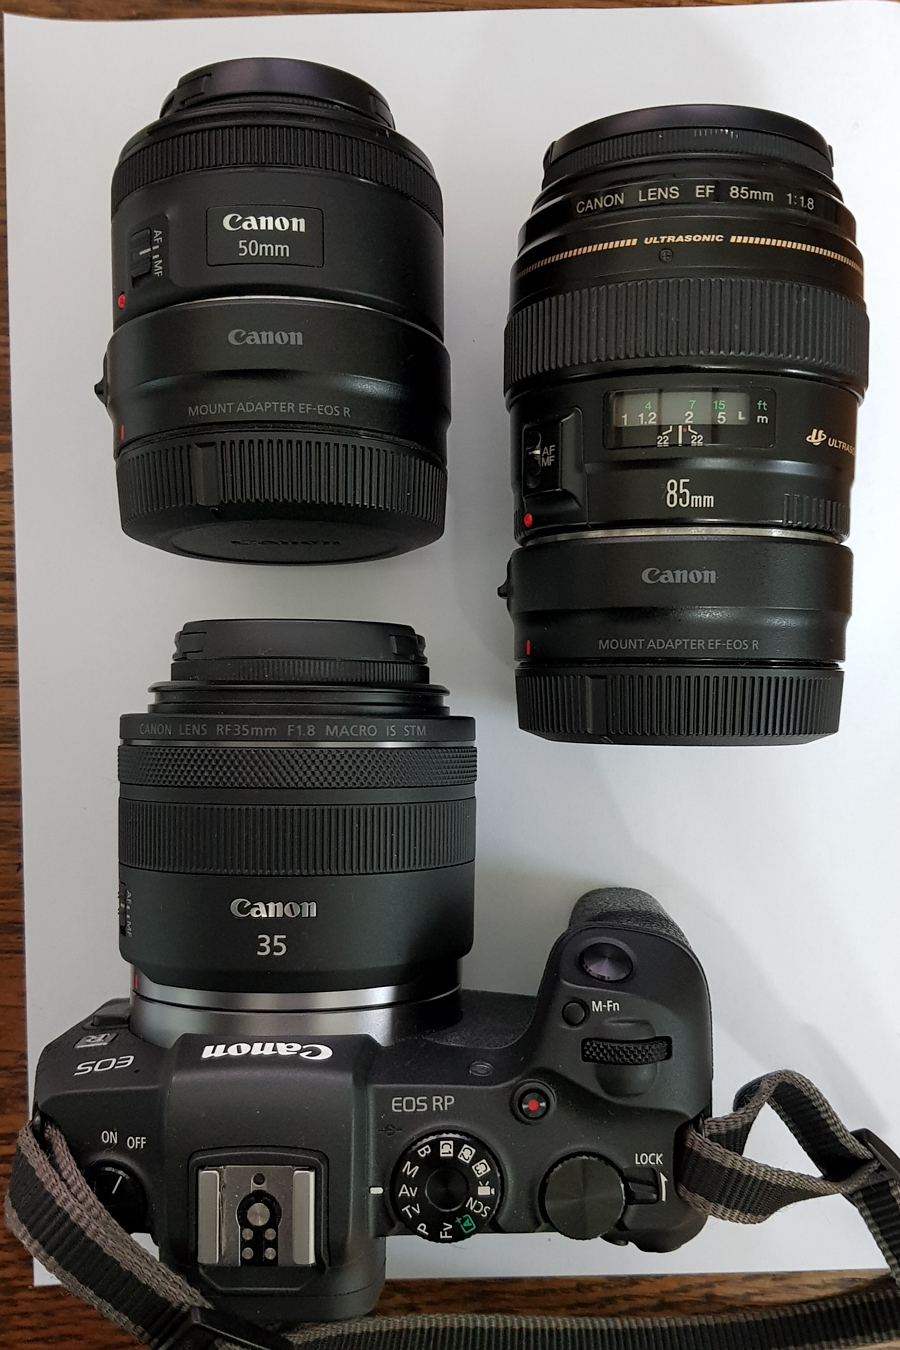 Canon RP plus adapted lenses / Photography by Huw / Uploaded 10th October 2019 @ 10:42 PM